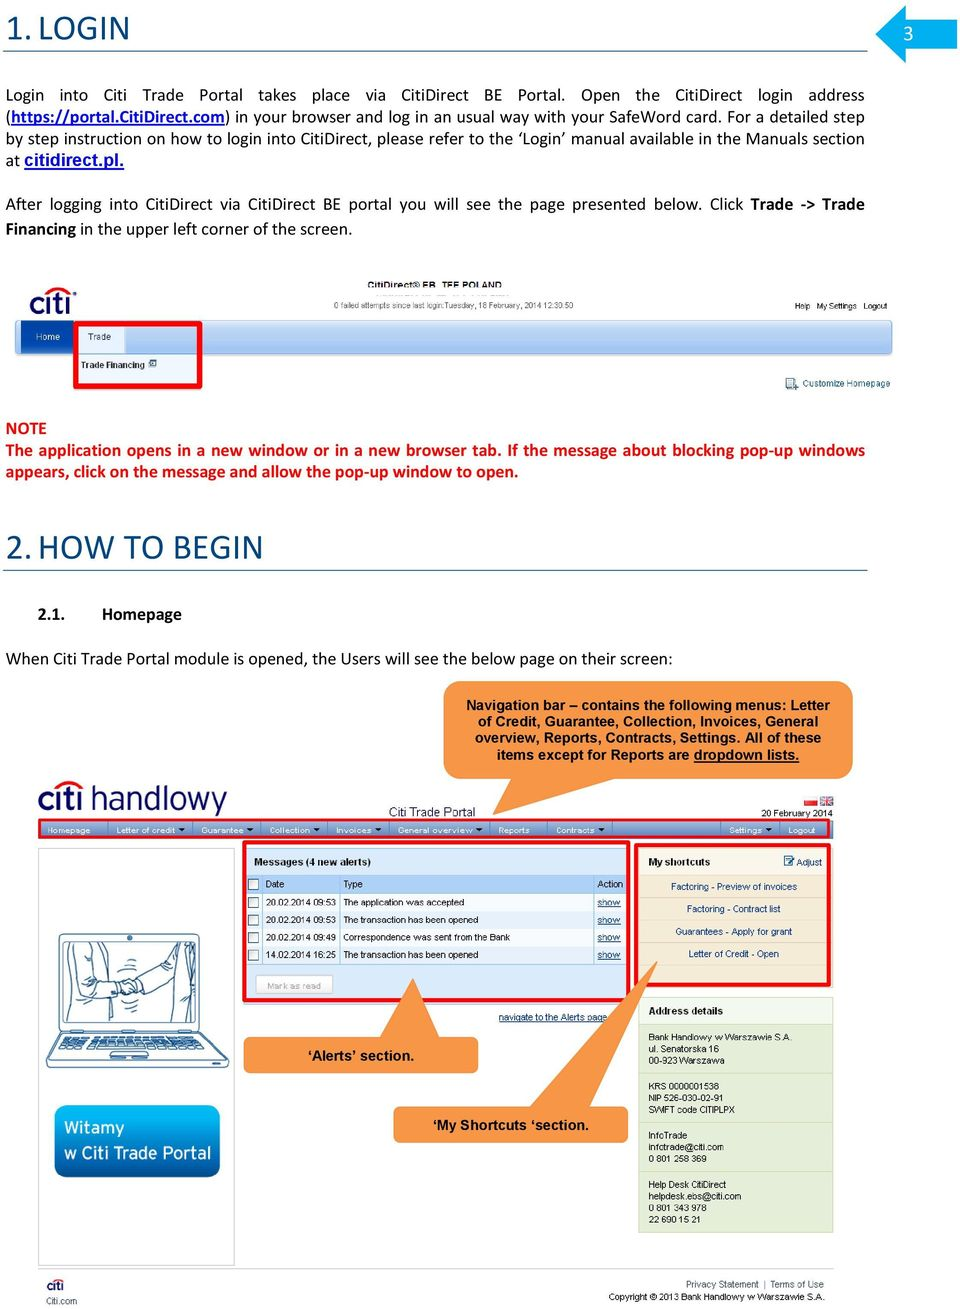 For a detailed step by step instruction on how to login into CitiDirect, please refer to the Login manual available in the Manuals section at citidirect.pl. After logging into CitiDirect via CitiDirect BE portal you will see the page presented below.